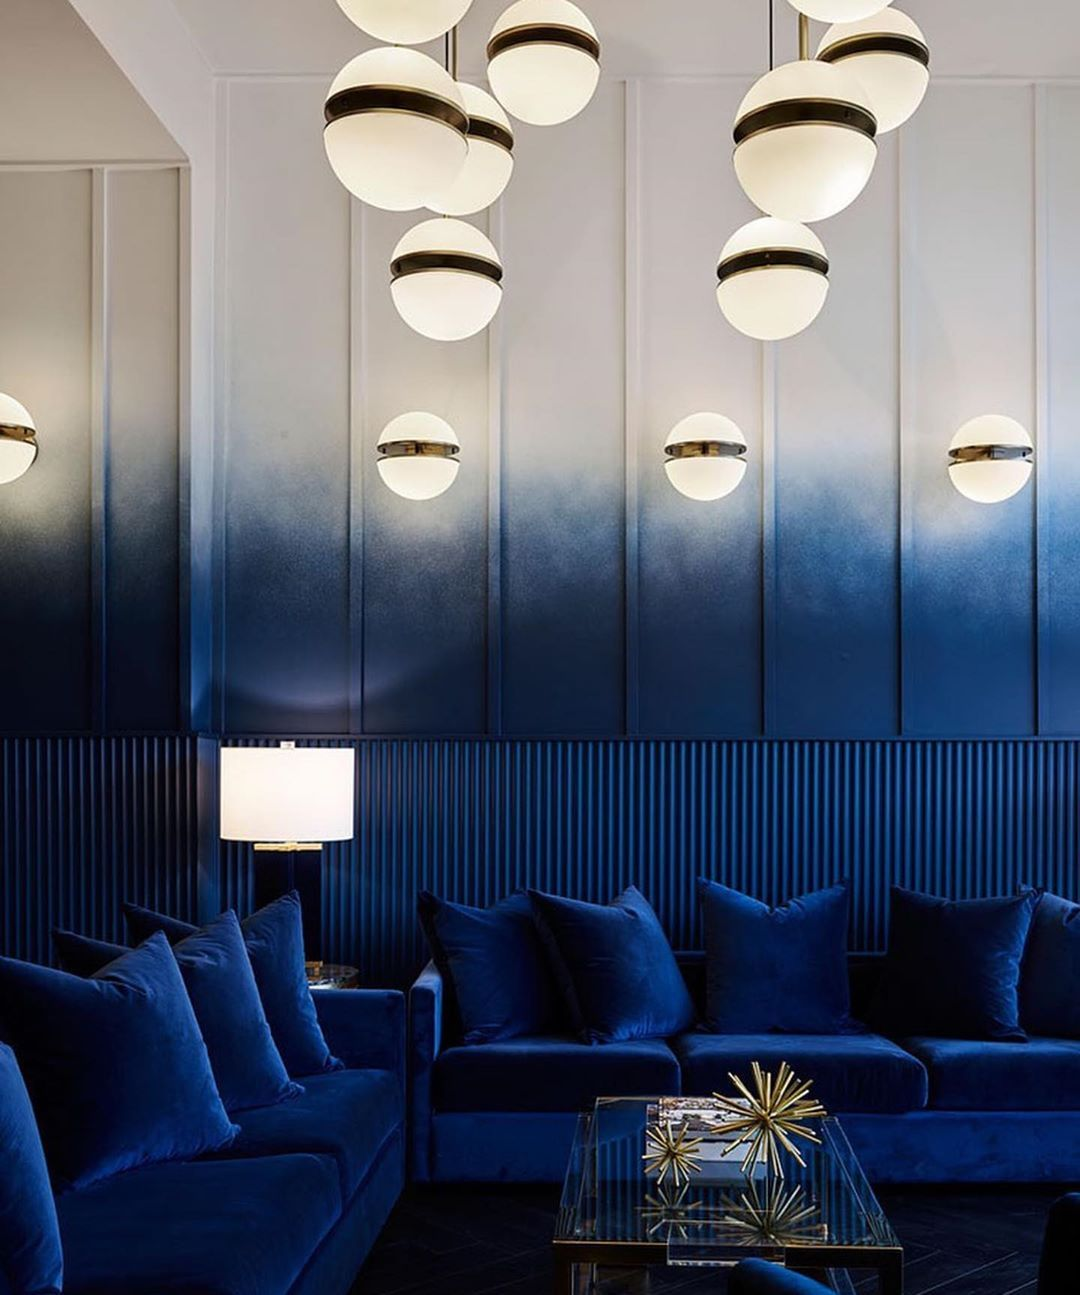 Shades Of Blue With Images Interior Interior Design Hotels